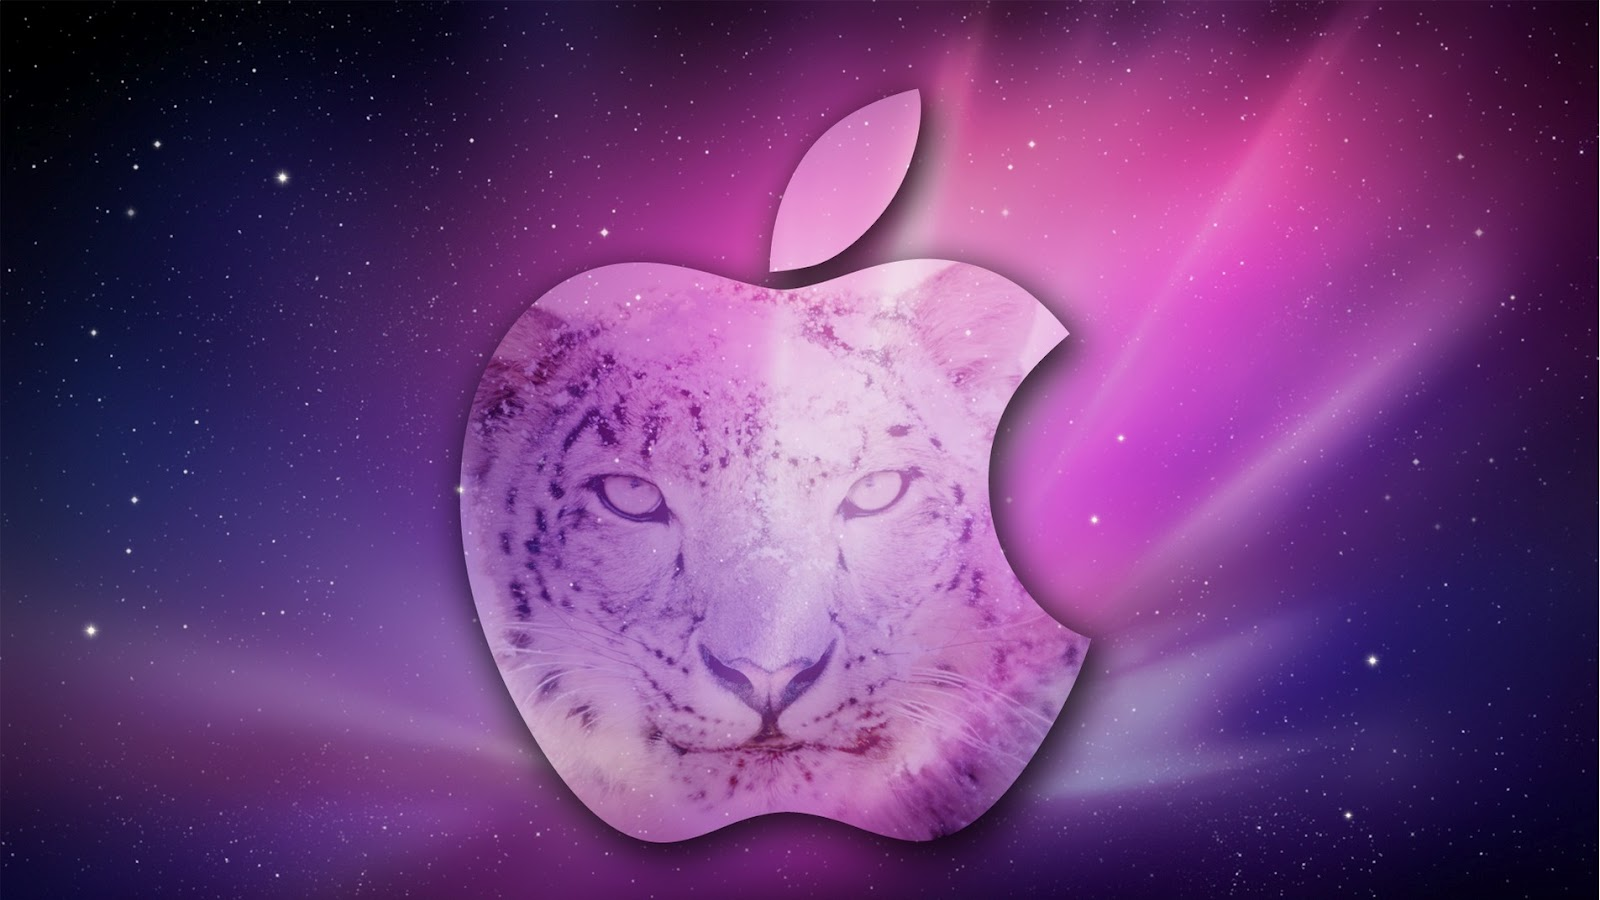 Apple Mac Wallpapers Hd: Nice's Wallpaper's: Apple Mac Wallpapers HD